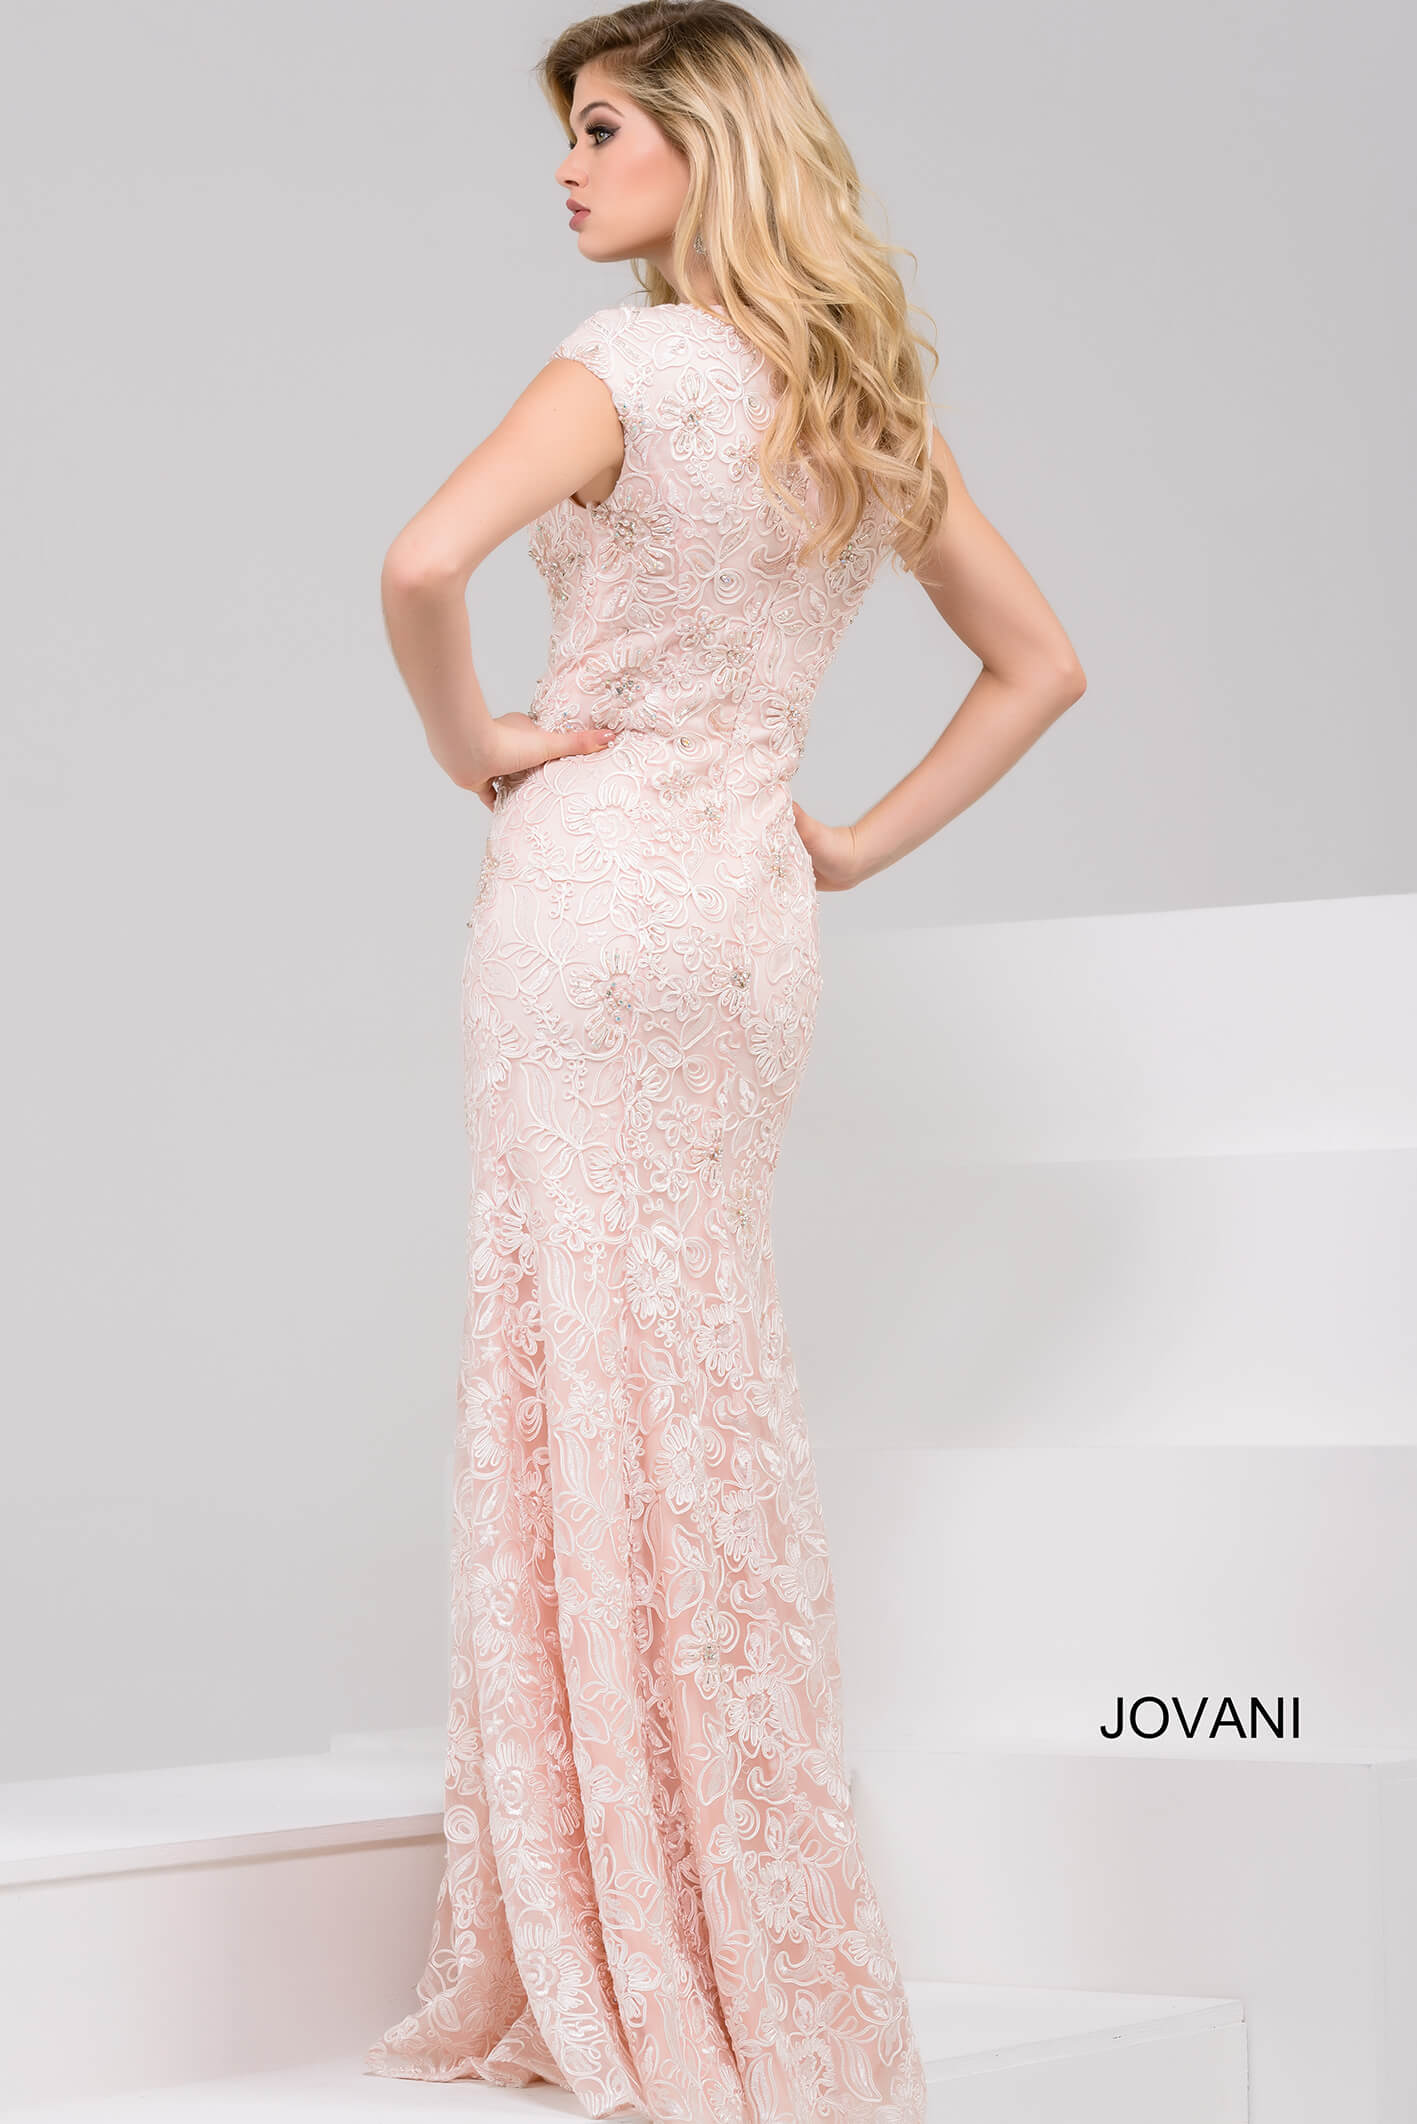 Jovani blush cap sleeve fitted evening dress 47765 on mobile 0